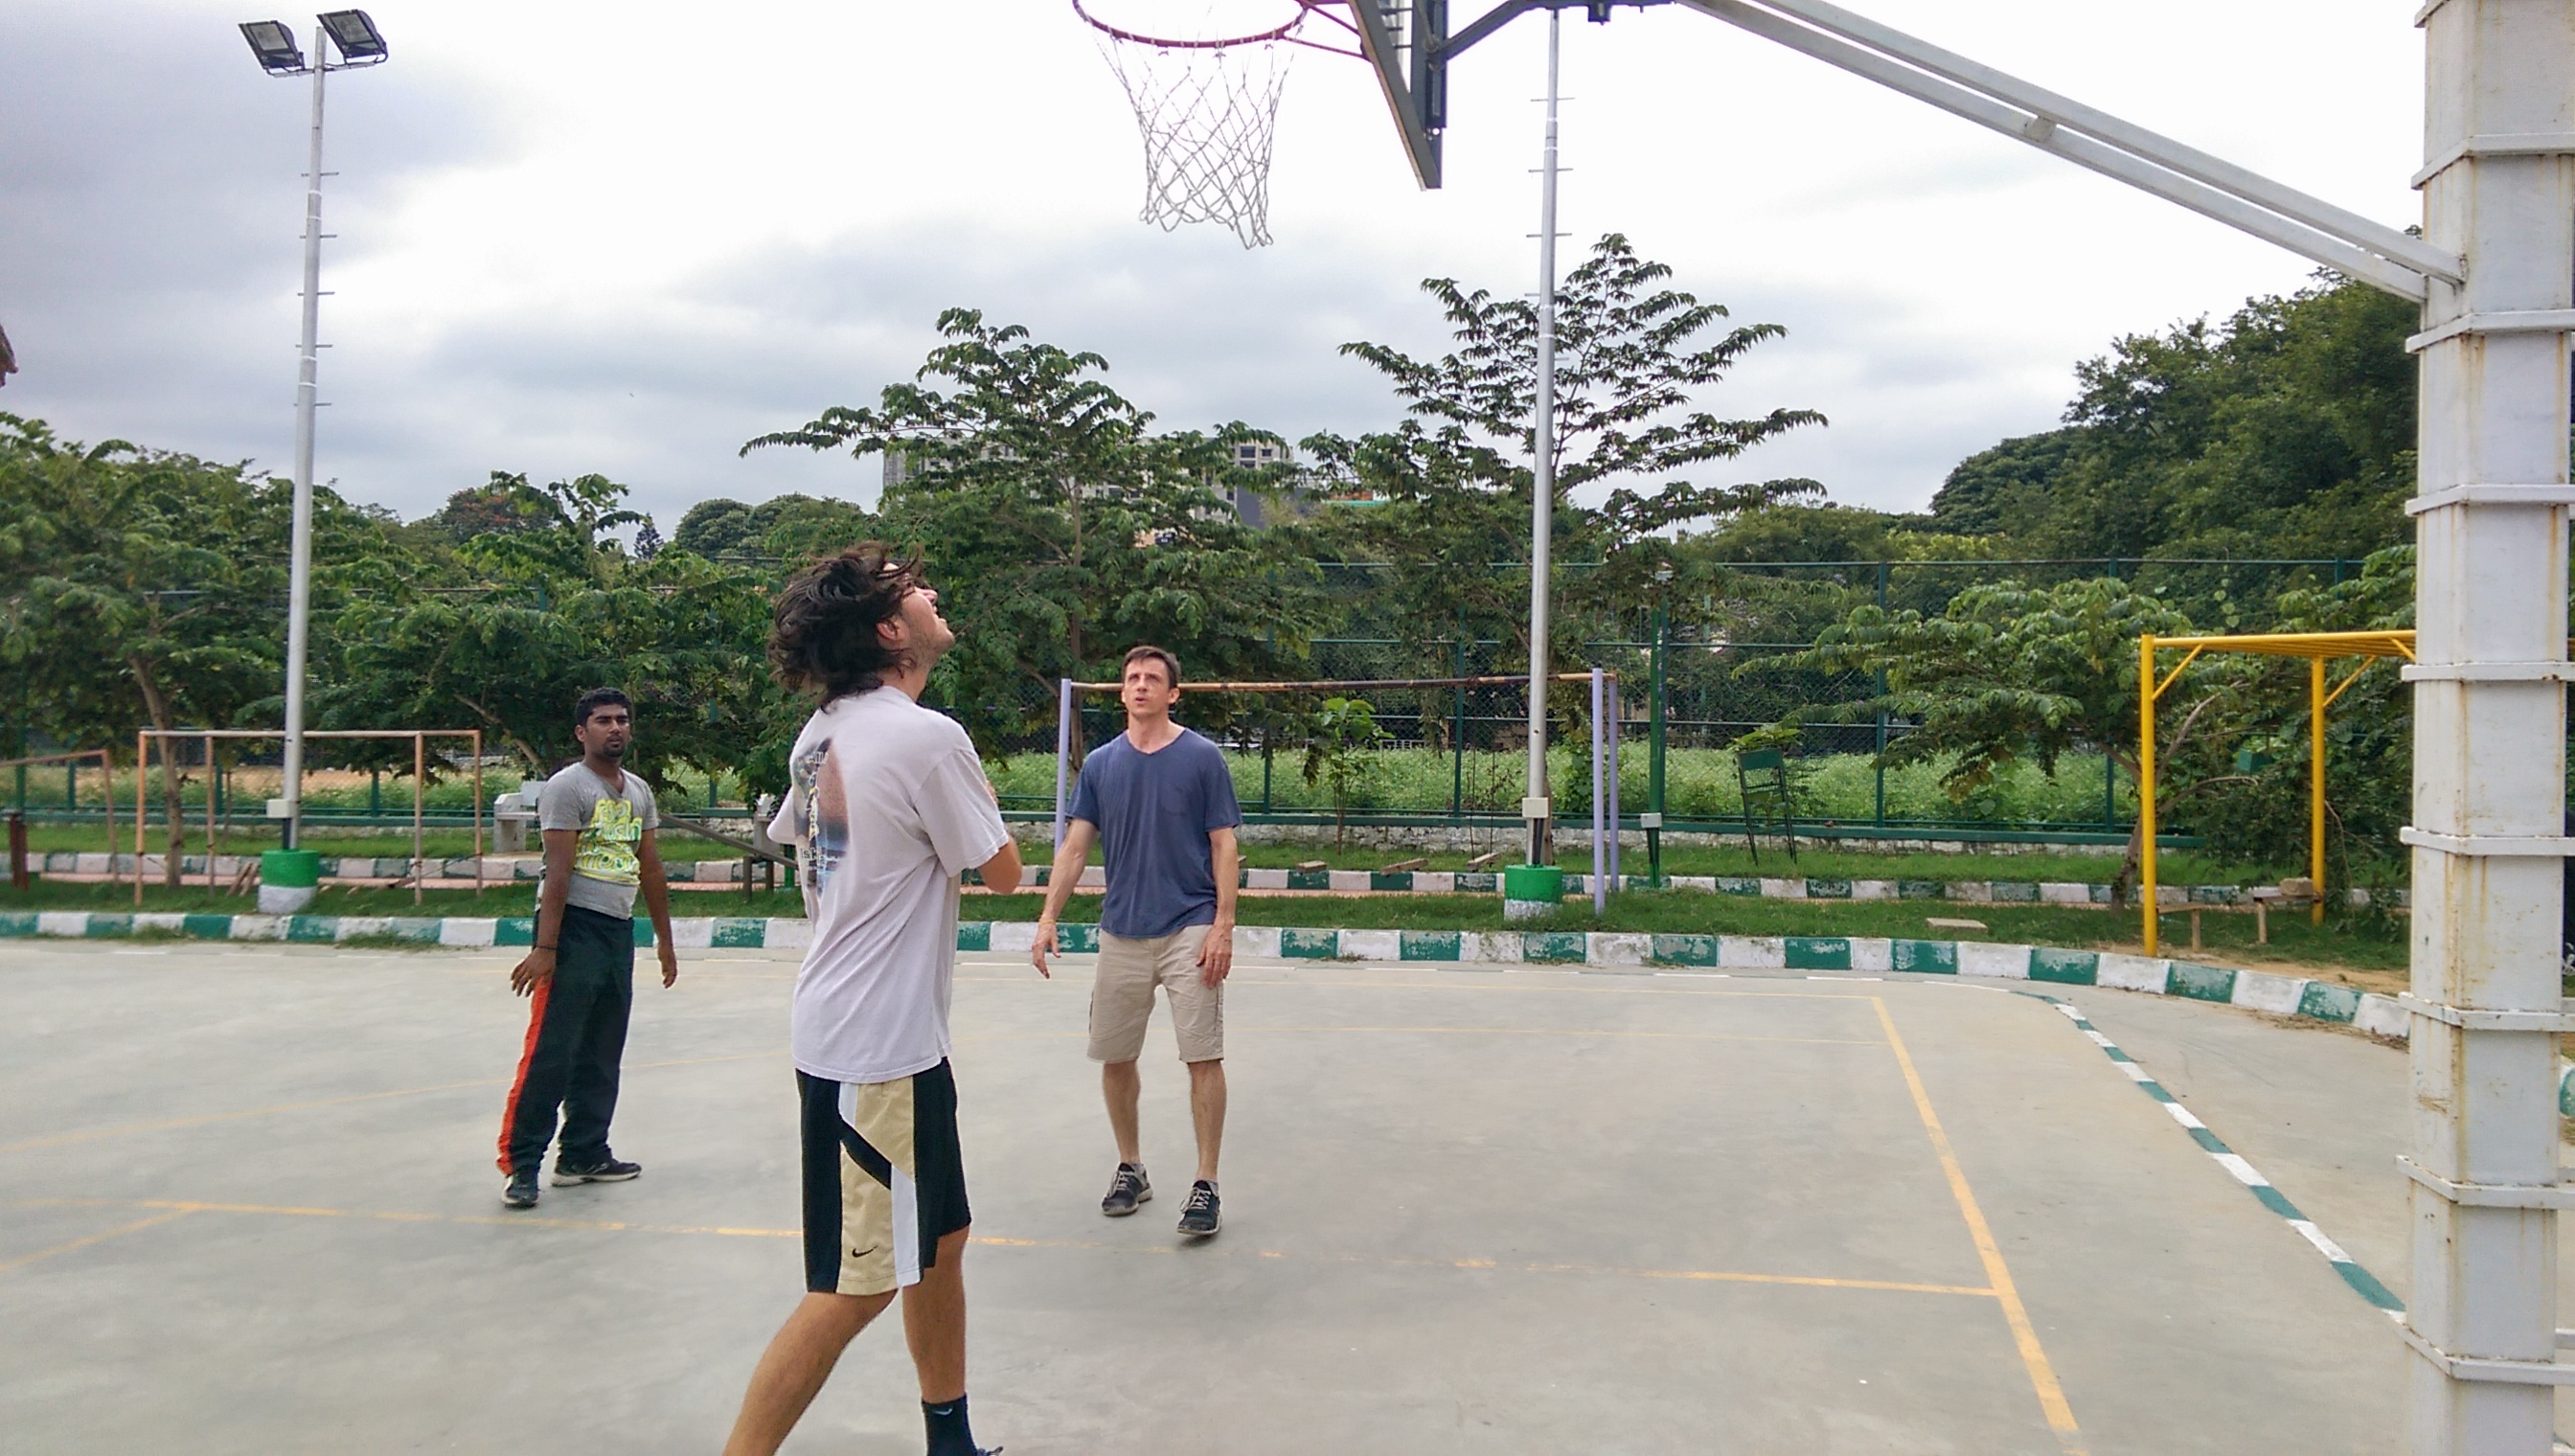 A game of basket ball